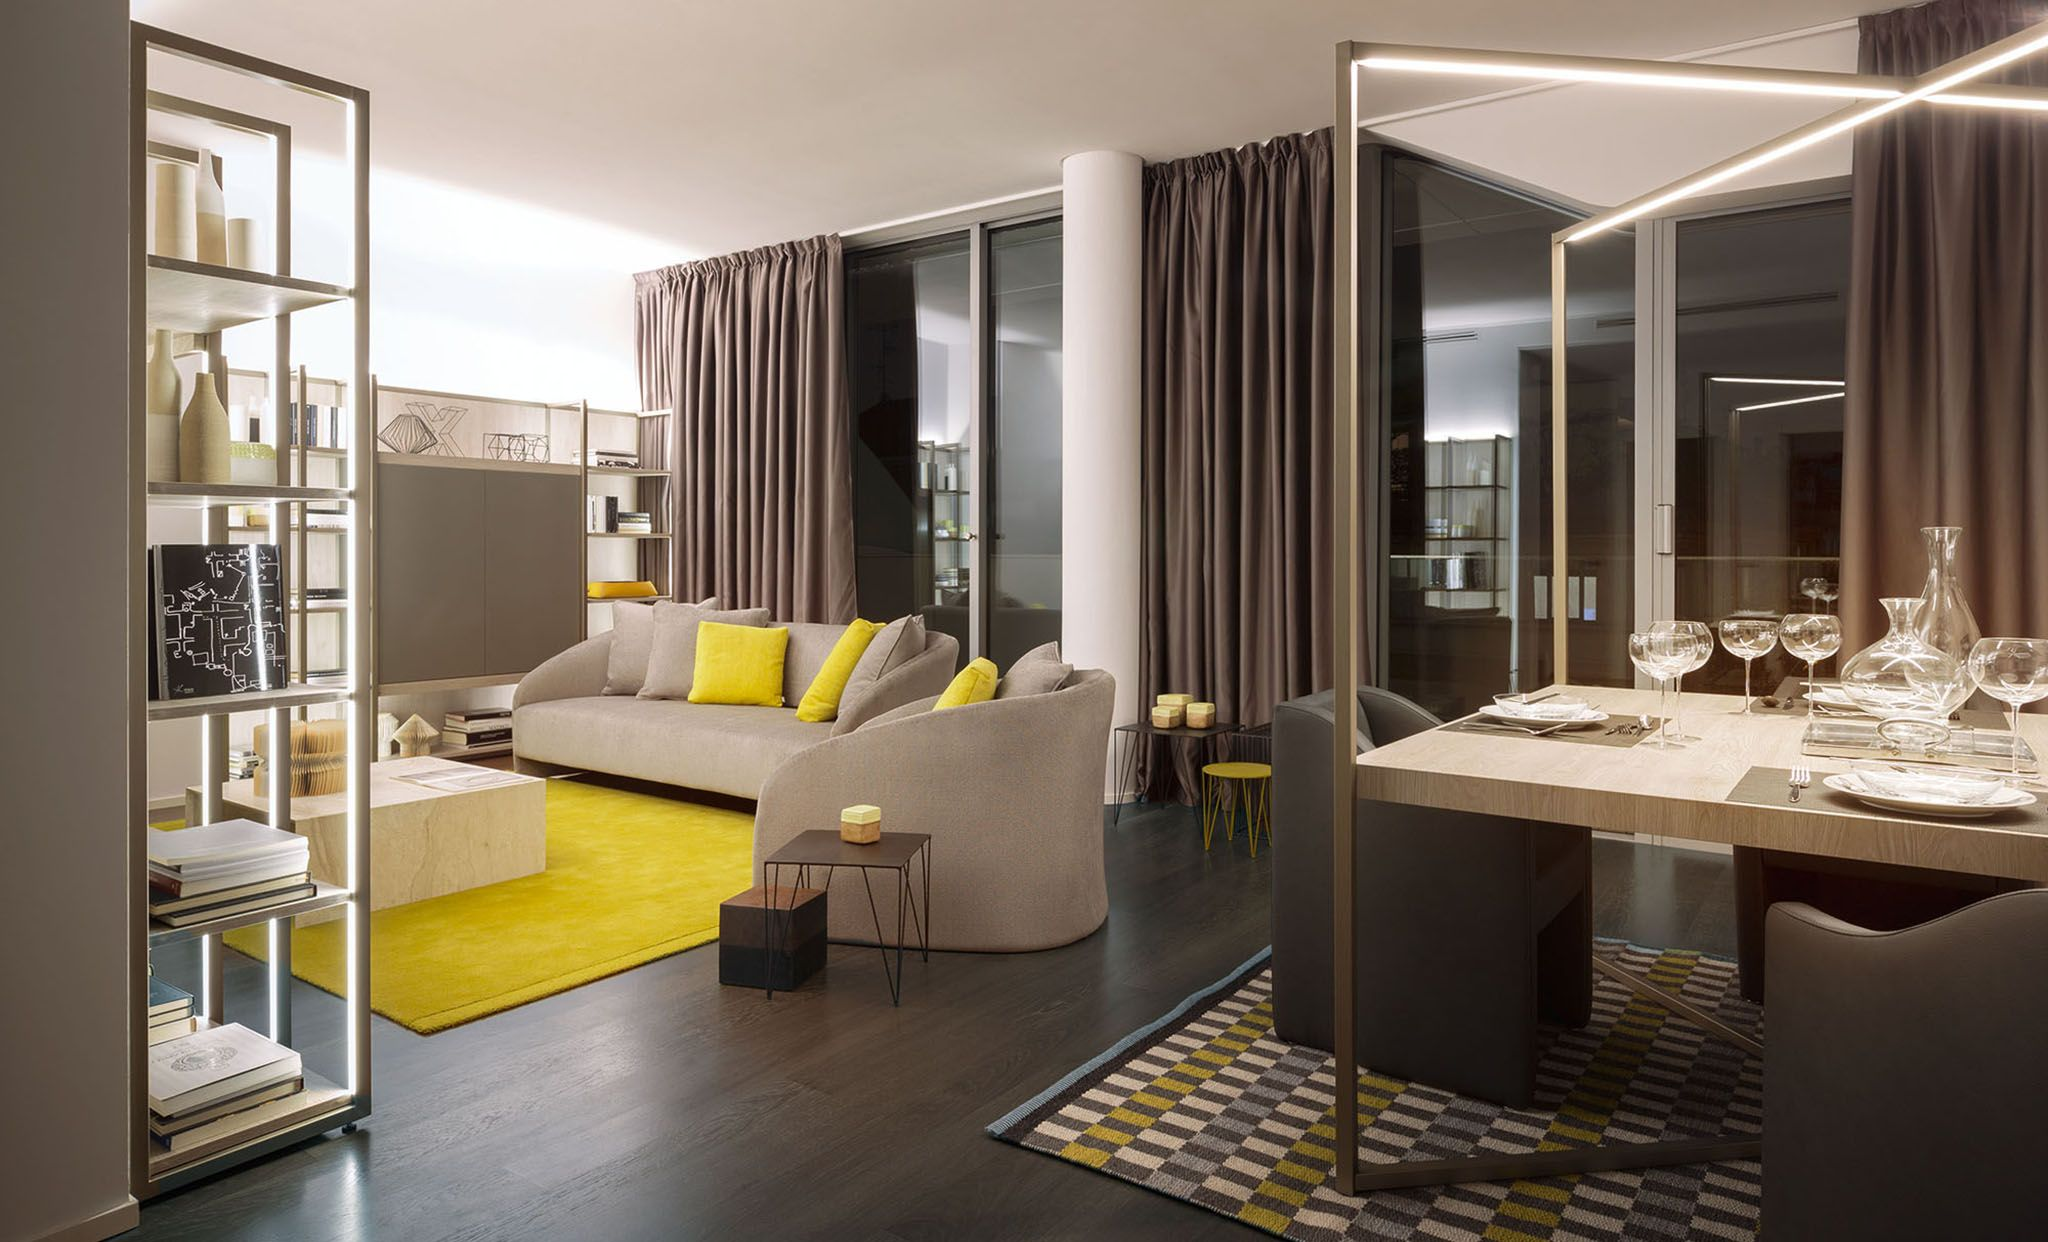 The first apartments, free from lamps, chandeliers and